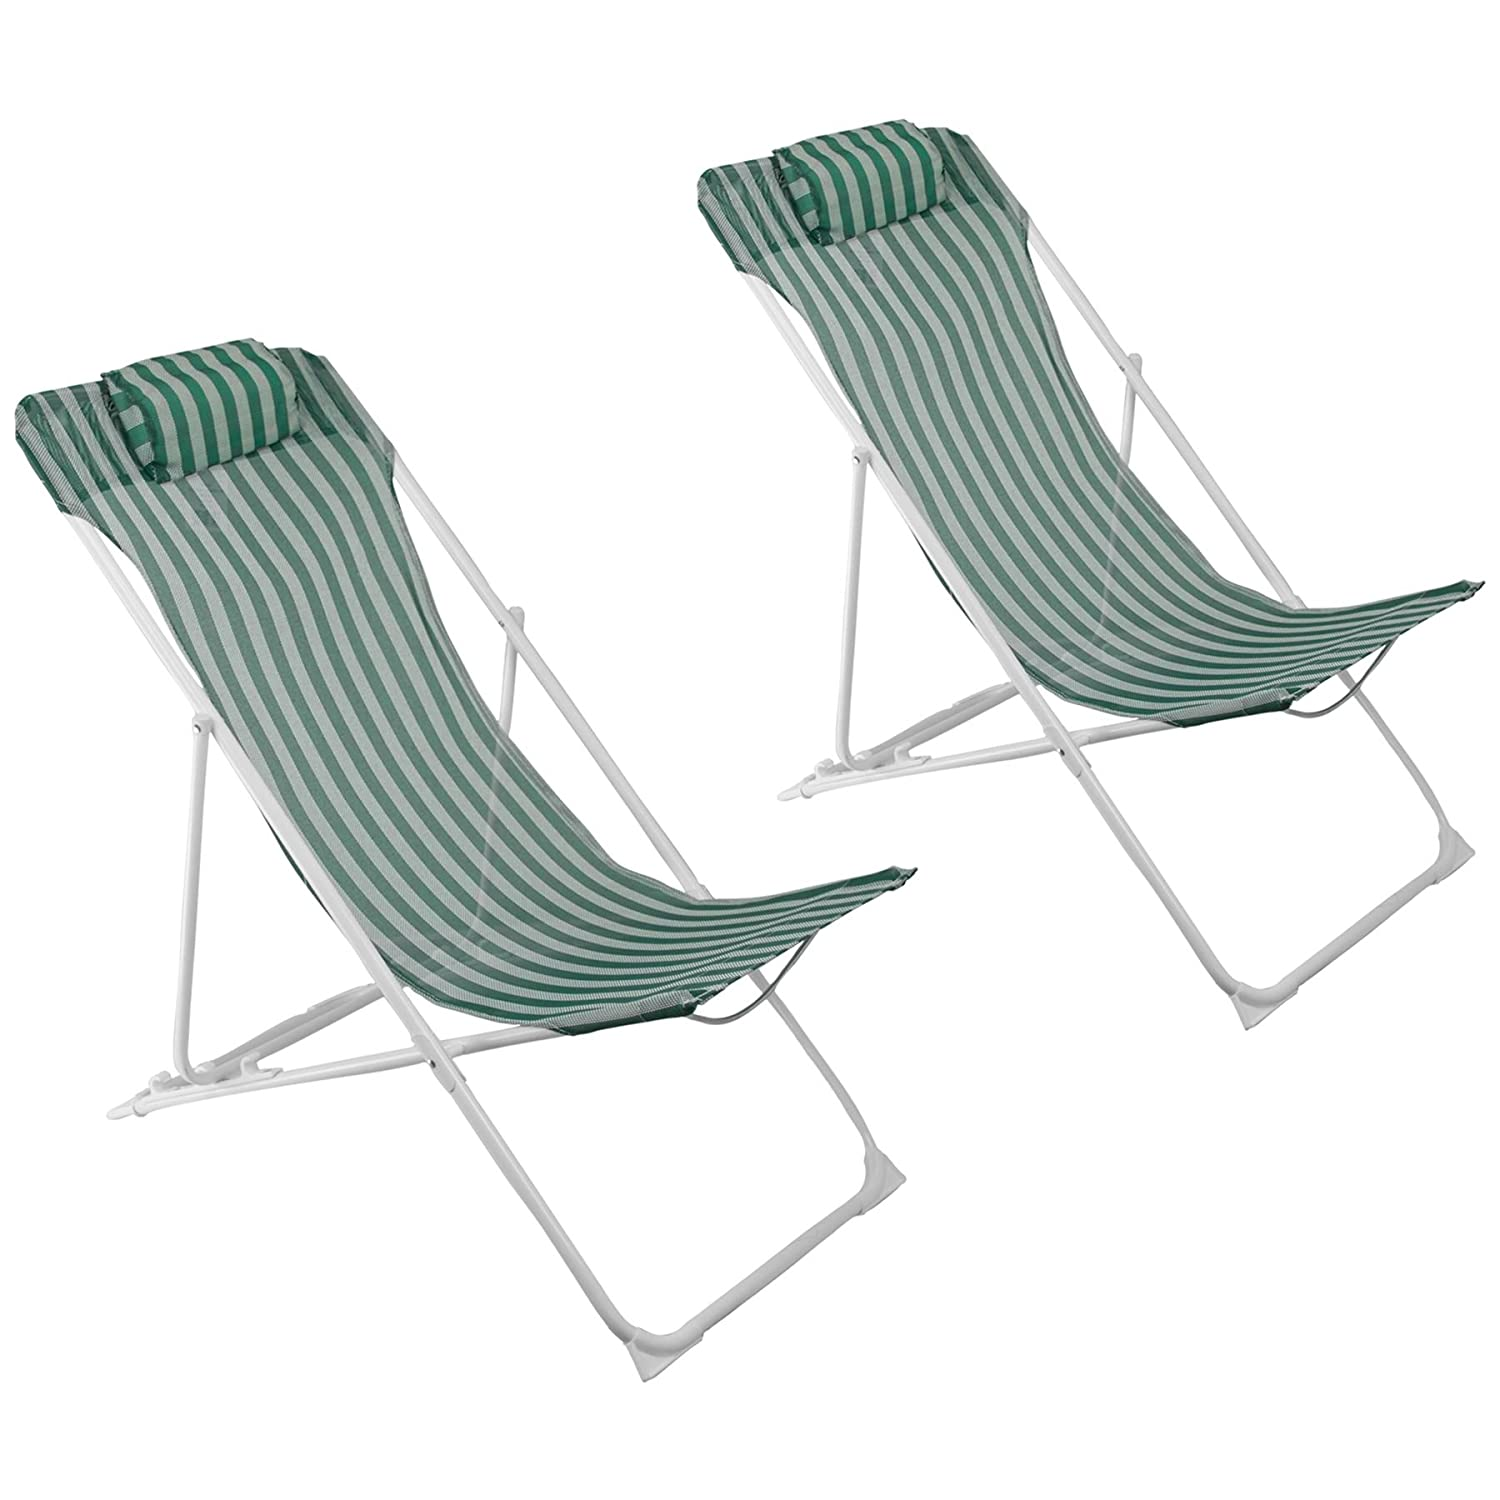 Harbour Housewares Metal Garden Deck Chair - 3 Positions - Green / White Stripe - Pack Of 2